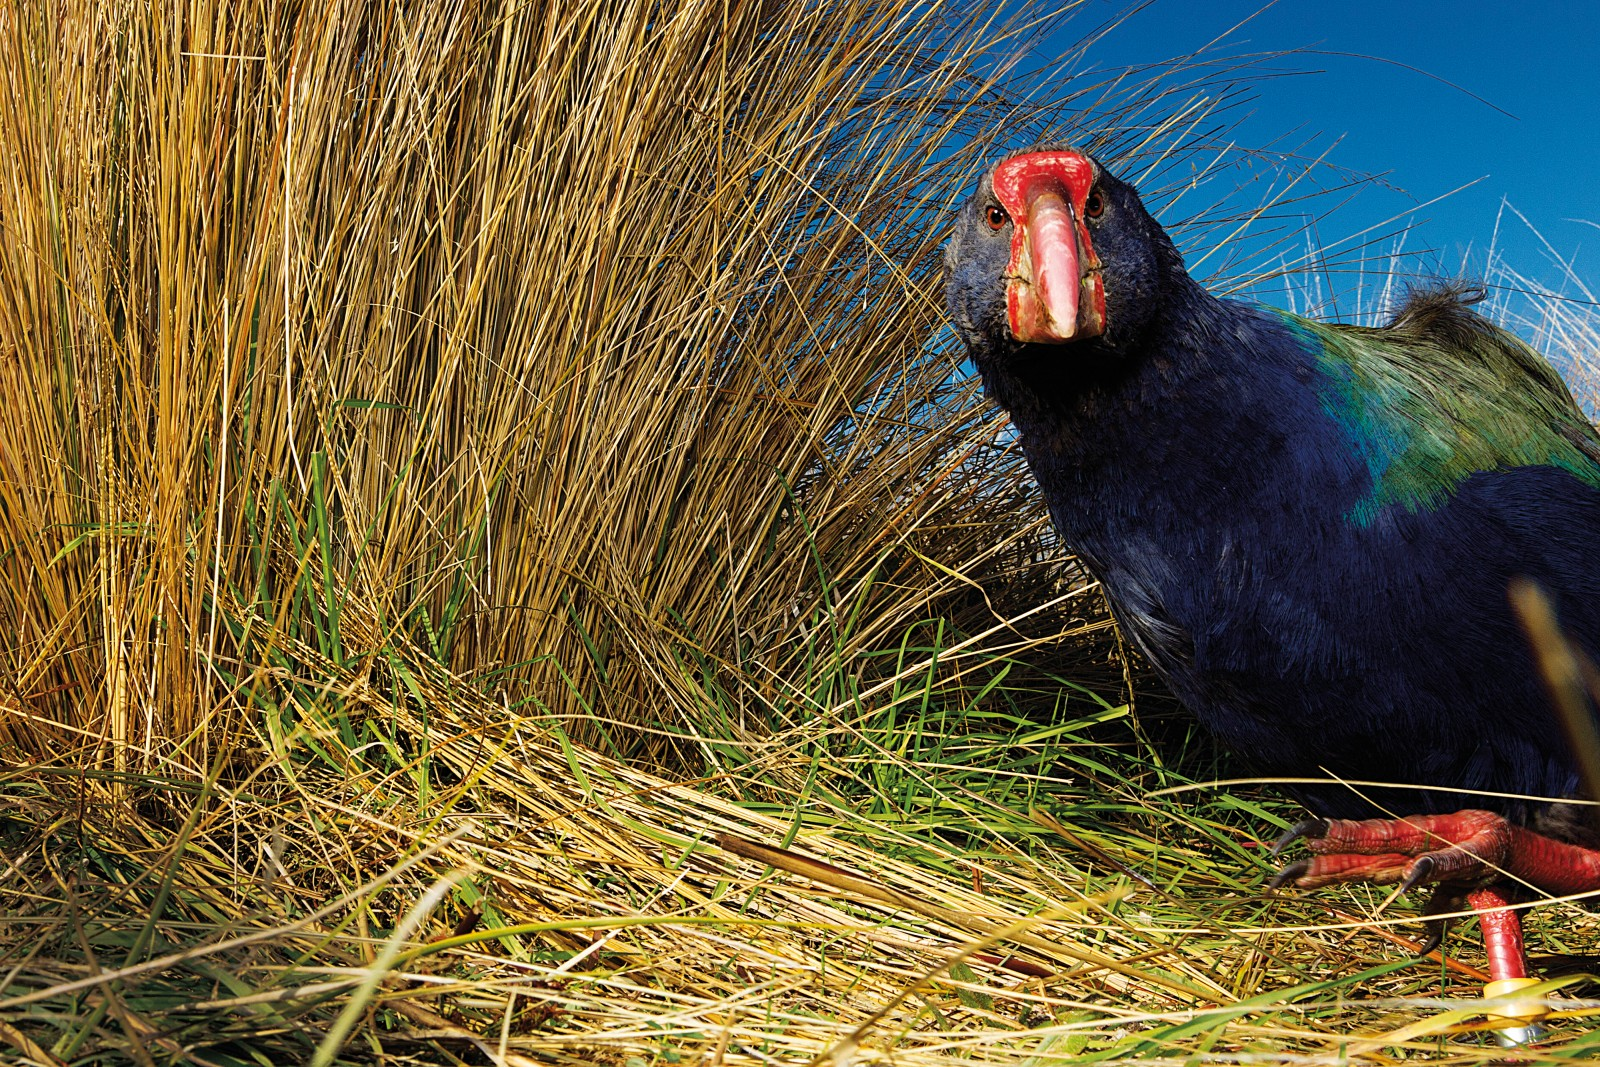 Closely-cropped tussock tillers, arranged in neat bunches like pick-up sticks, are a telltale sign of a feeding takahe. In the Murchison Mountains the birds favour the tussock above all other food sources, and head into high-alpine pastures as soon as winter snow melts above the bushline.